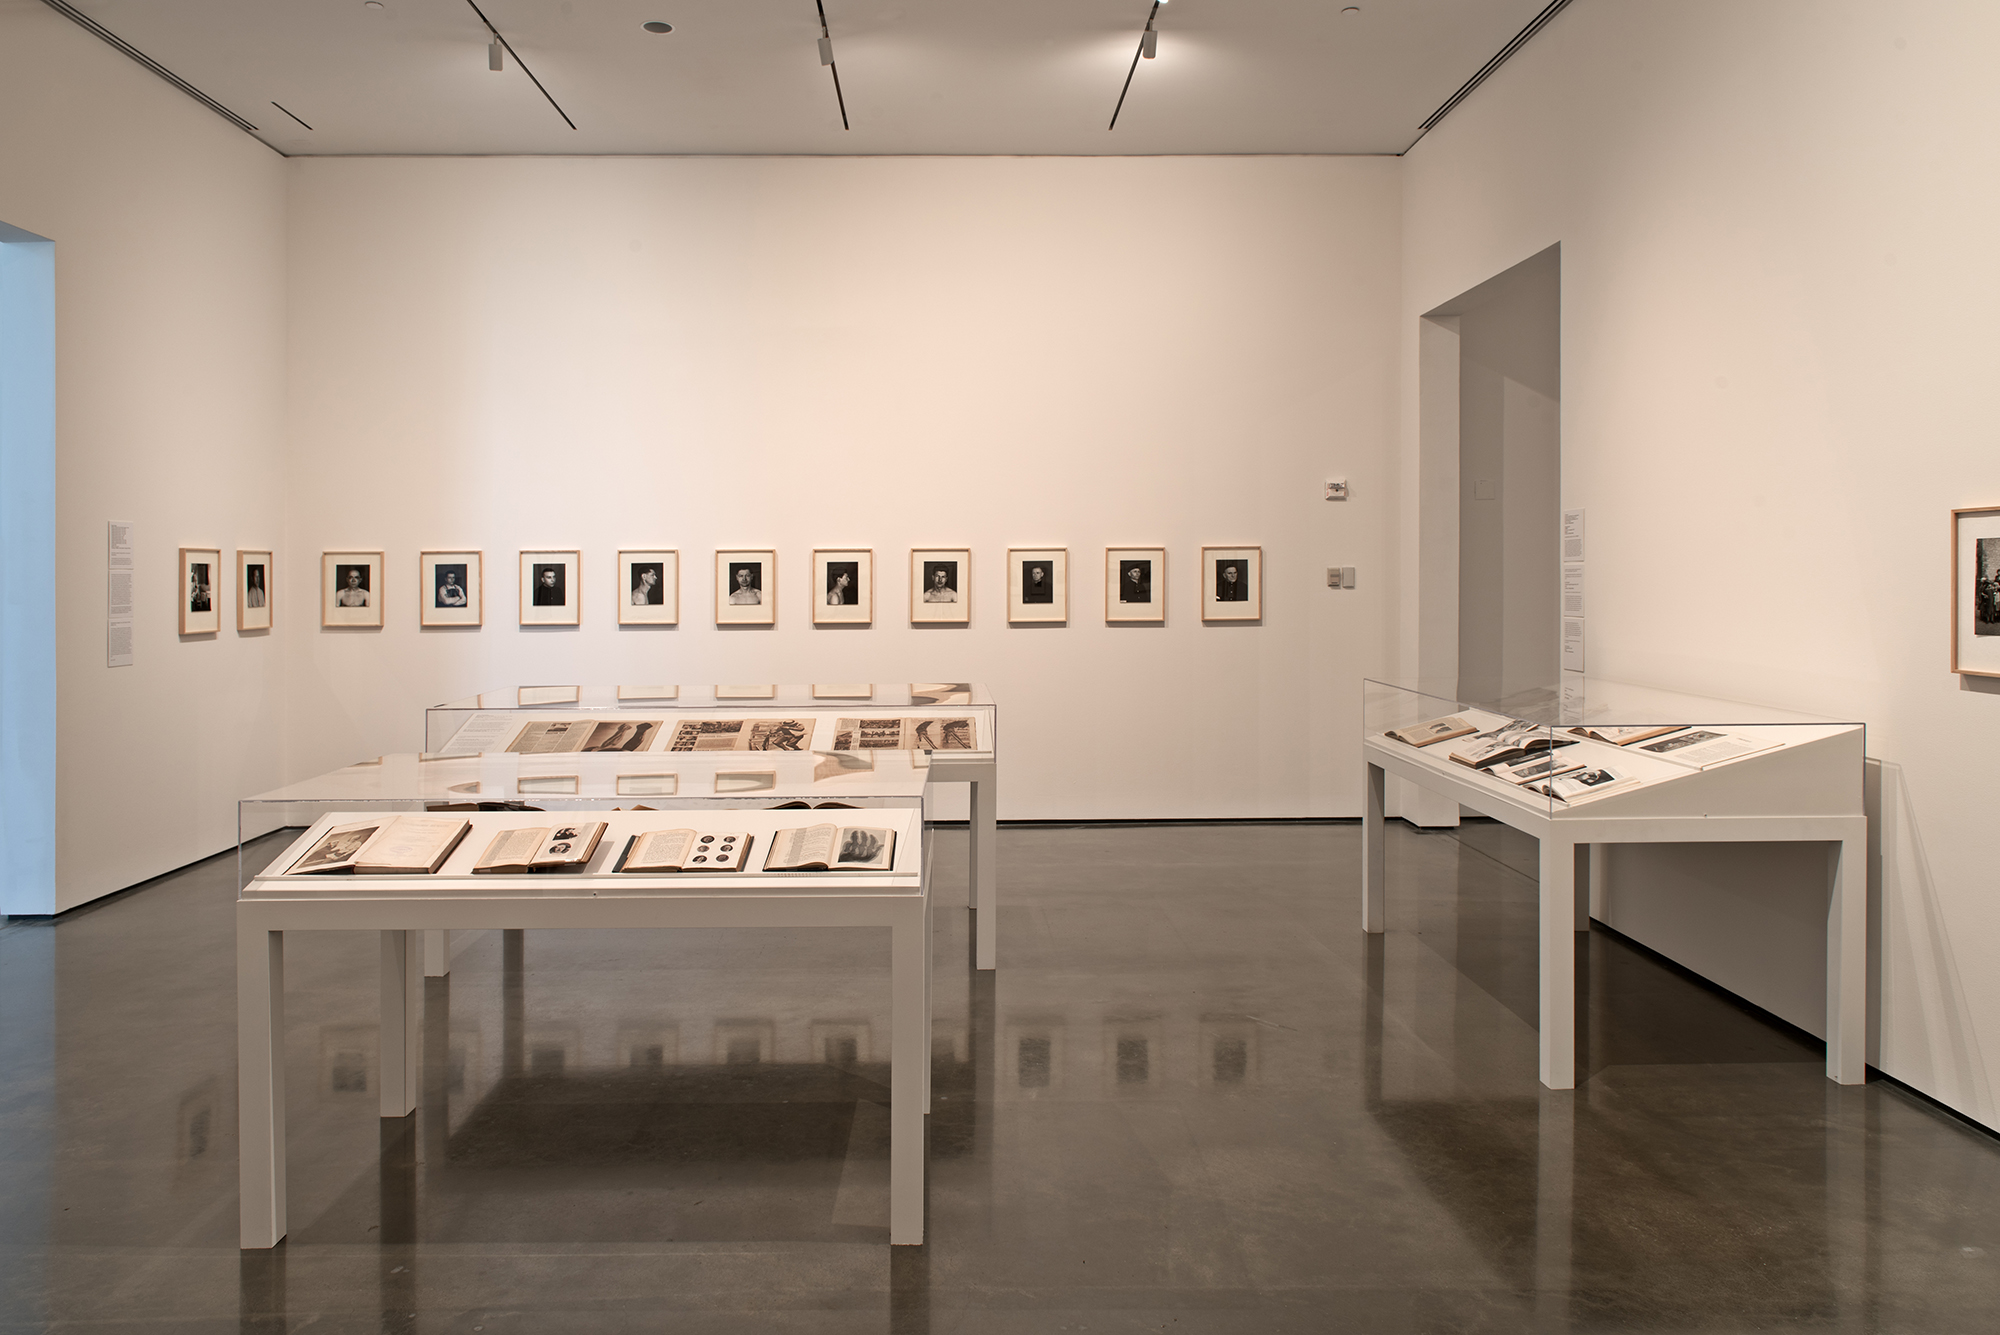 Picture Industry , Hessel Museum, Center for Curatorial Studies, Bard College, Annandale-on-Hudson, NY, 2017.     Duchenne de Boulogne, David Walsh, Alphonse Bertillon, Francis Galton, Charles Darwin,  John Heartfield, August Sander, Fritz Kahn, and Ernst Friedrich